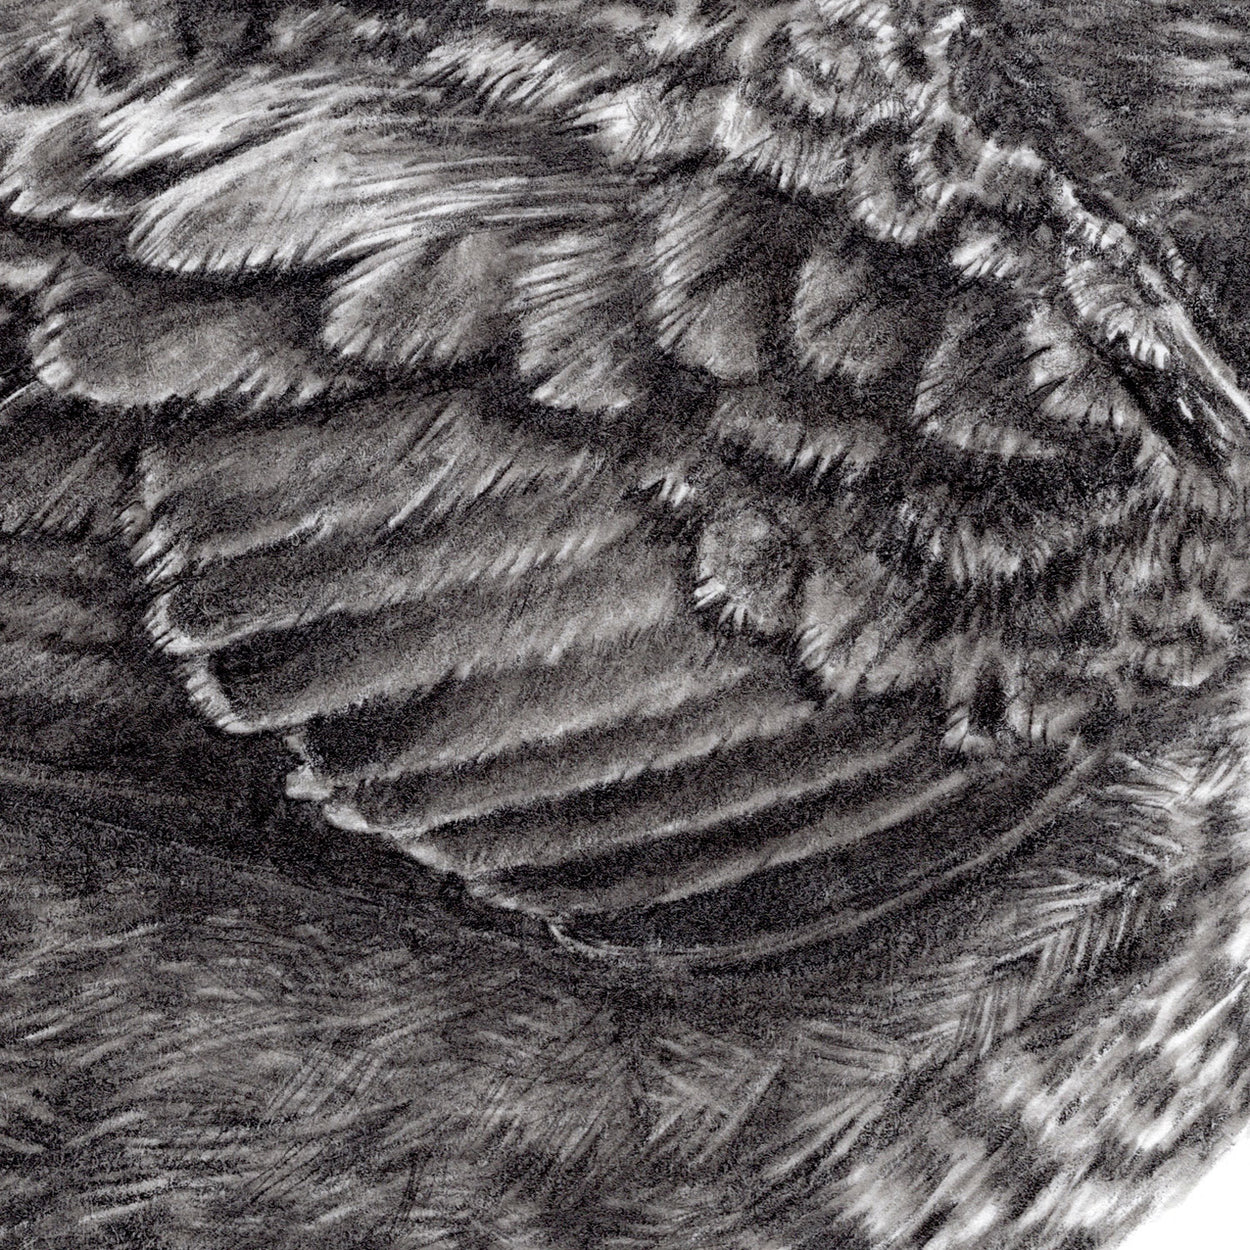 Dipper Drawing Wing Close-up - The Thriving Wild